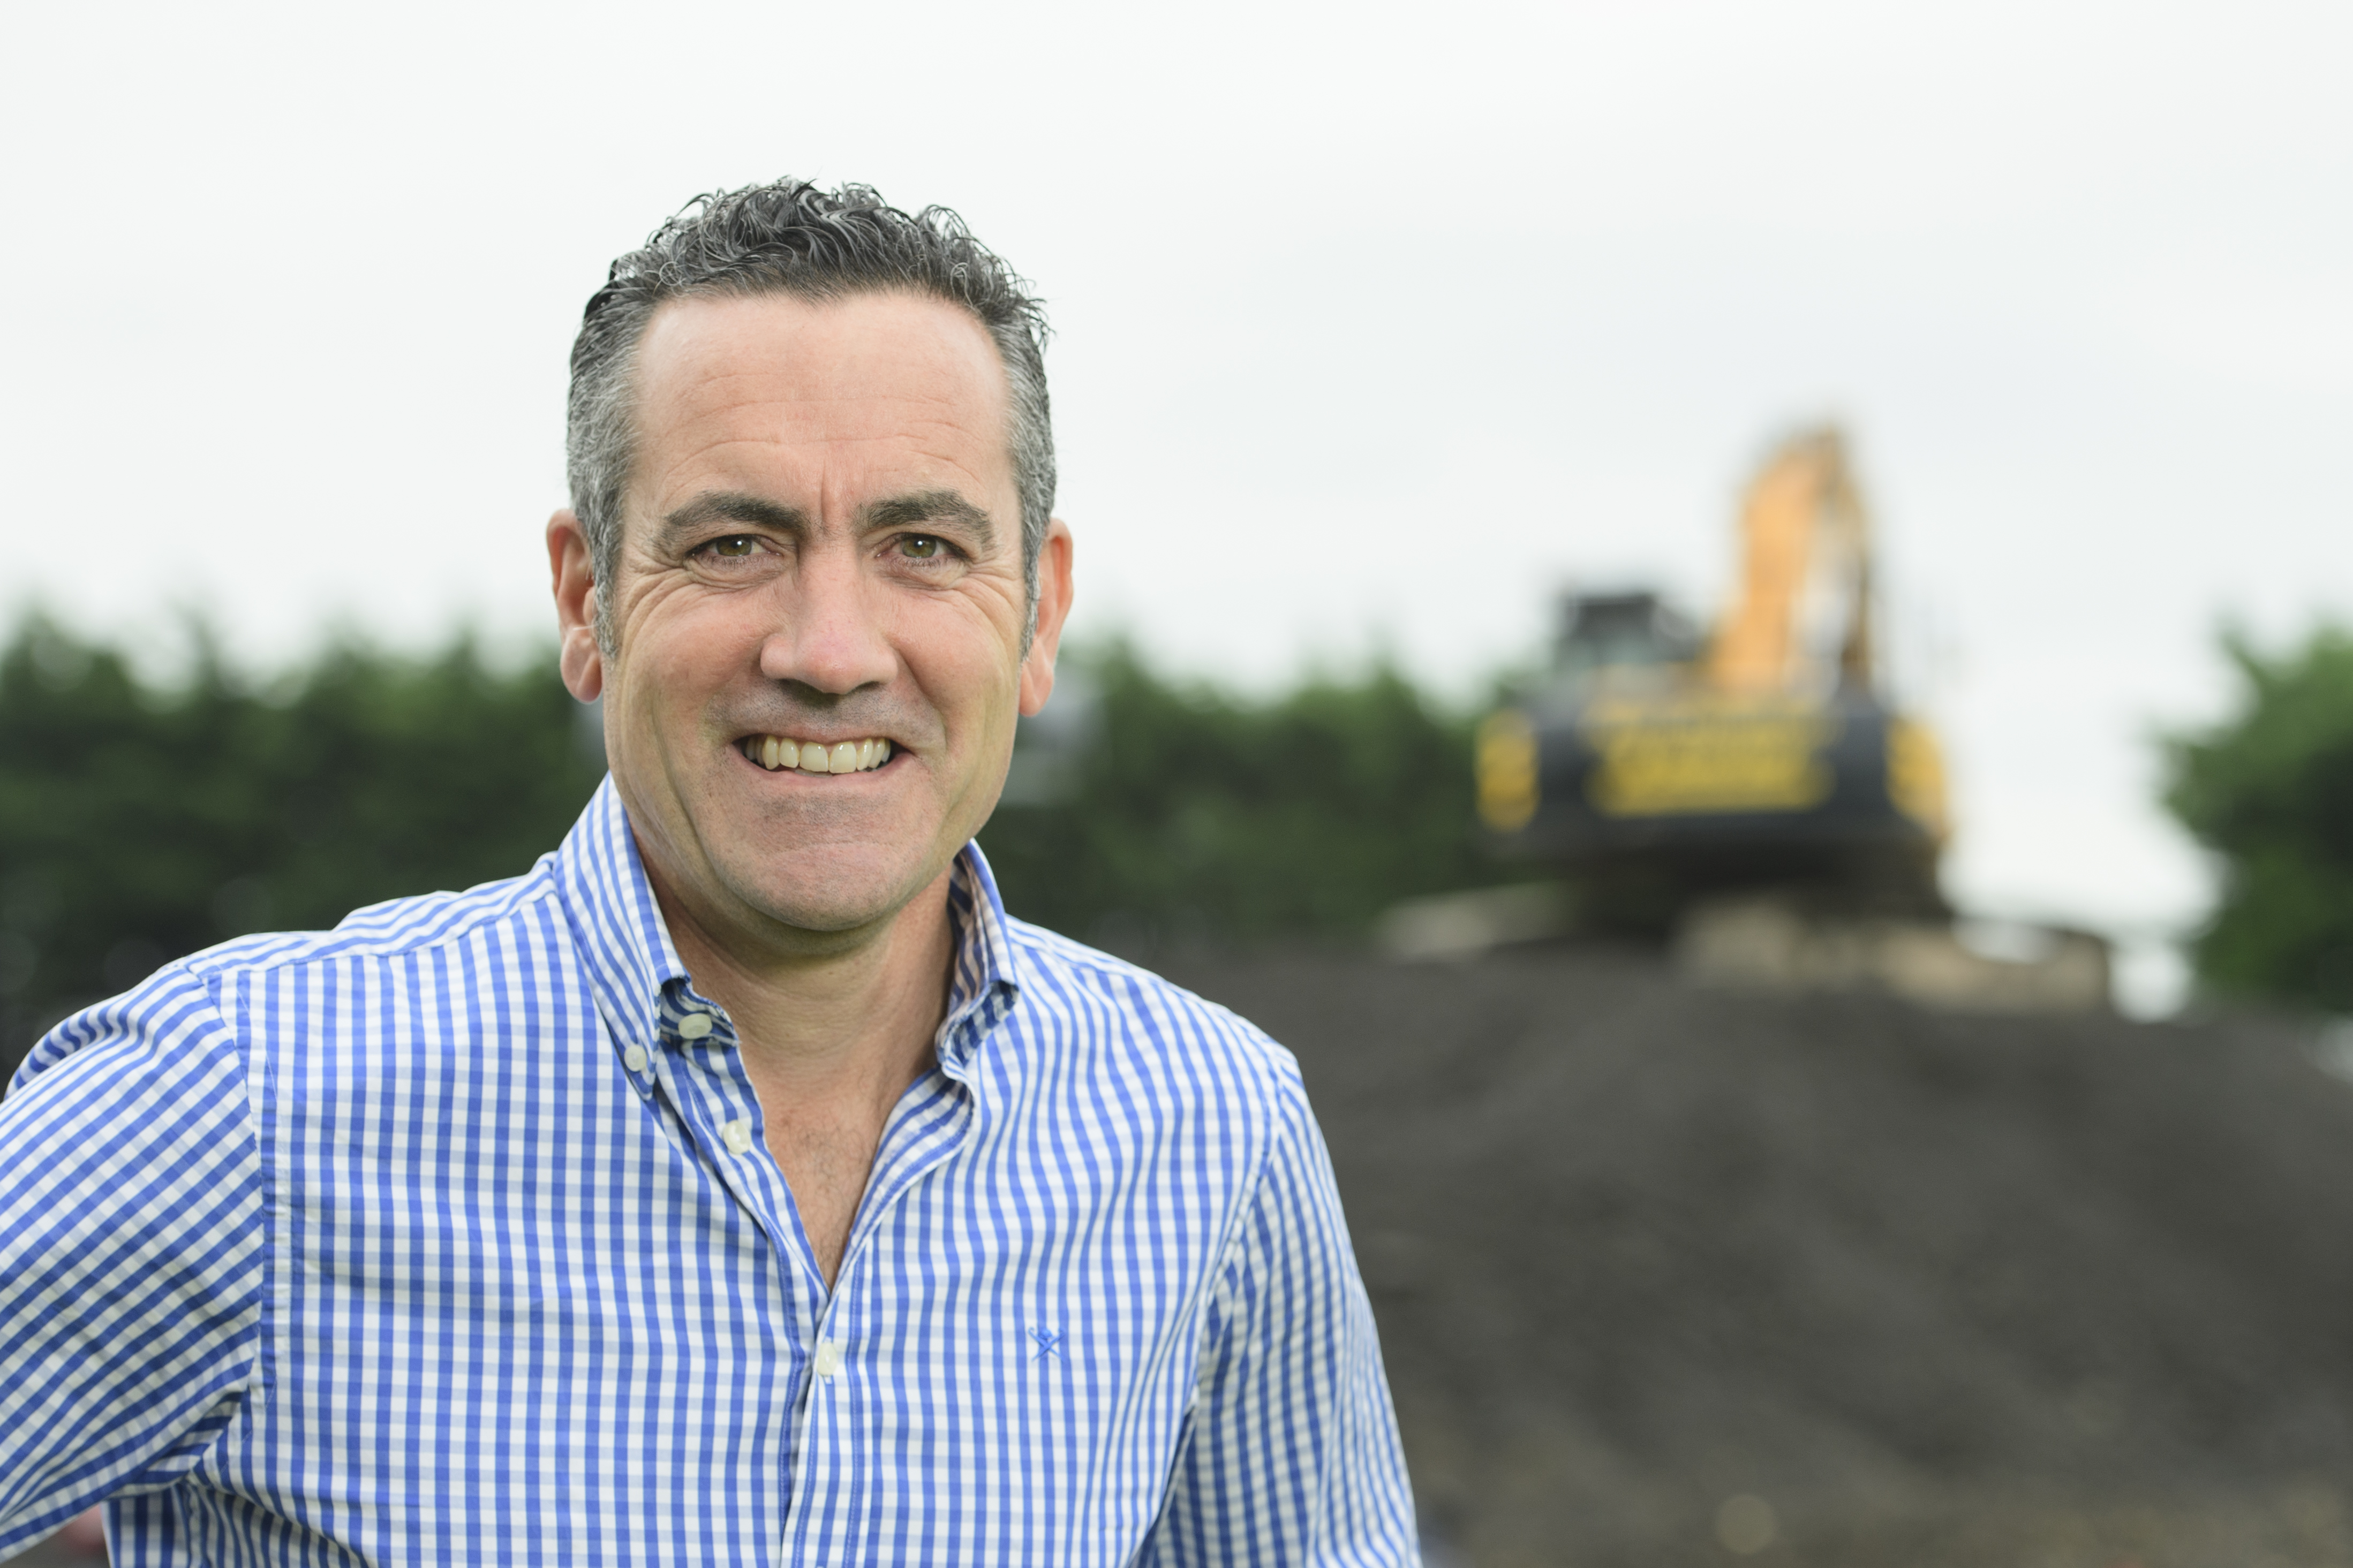 Investment in roads and potholes in England is much needed, writes Bruce Spencer-Knott, MD of Minster Group